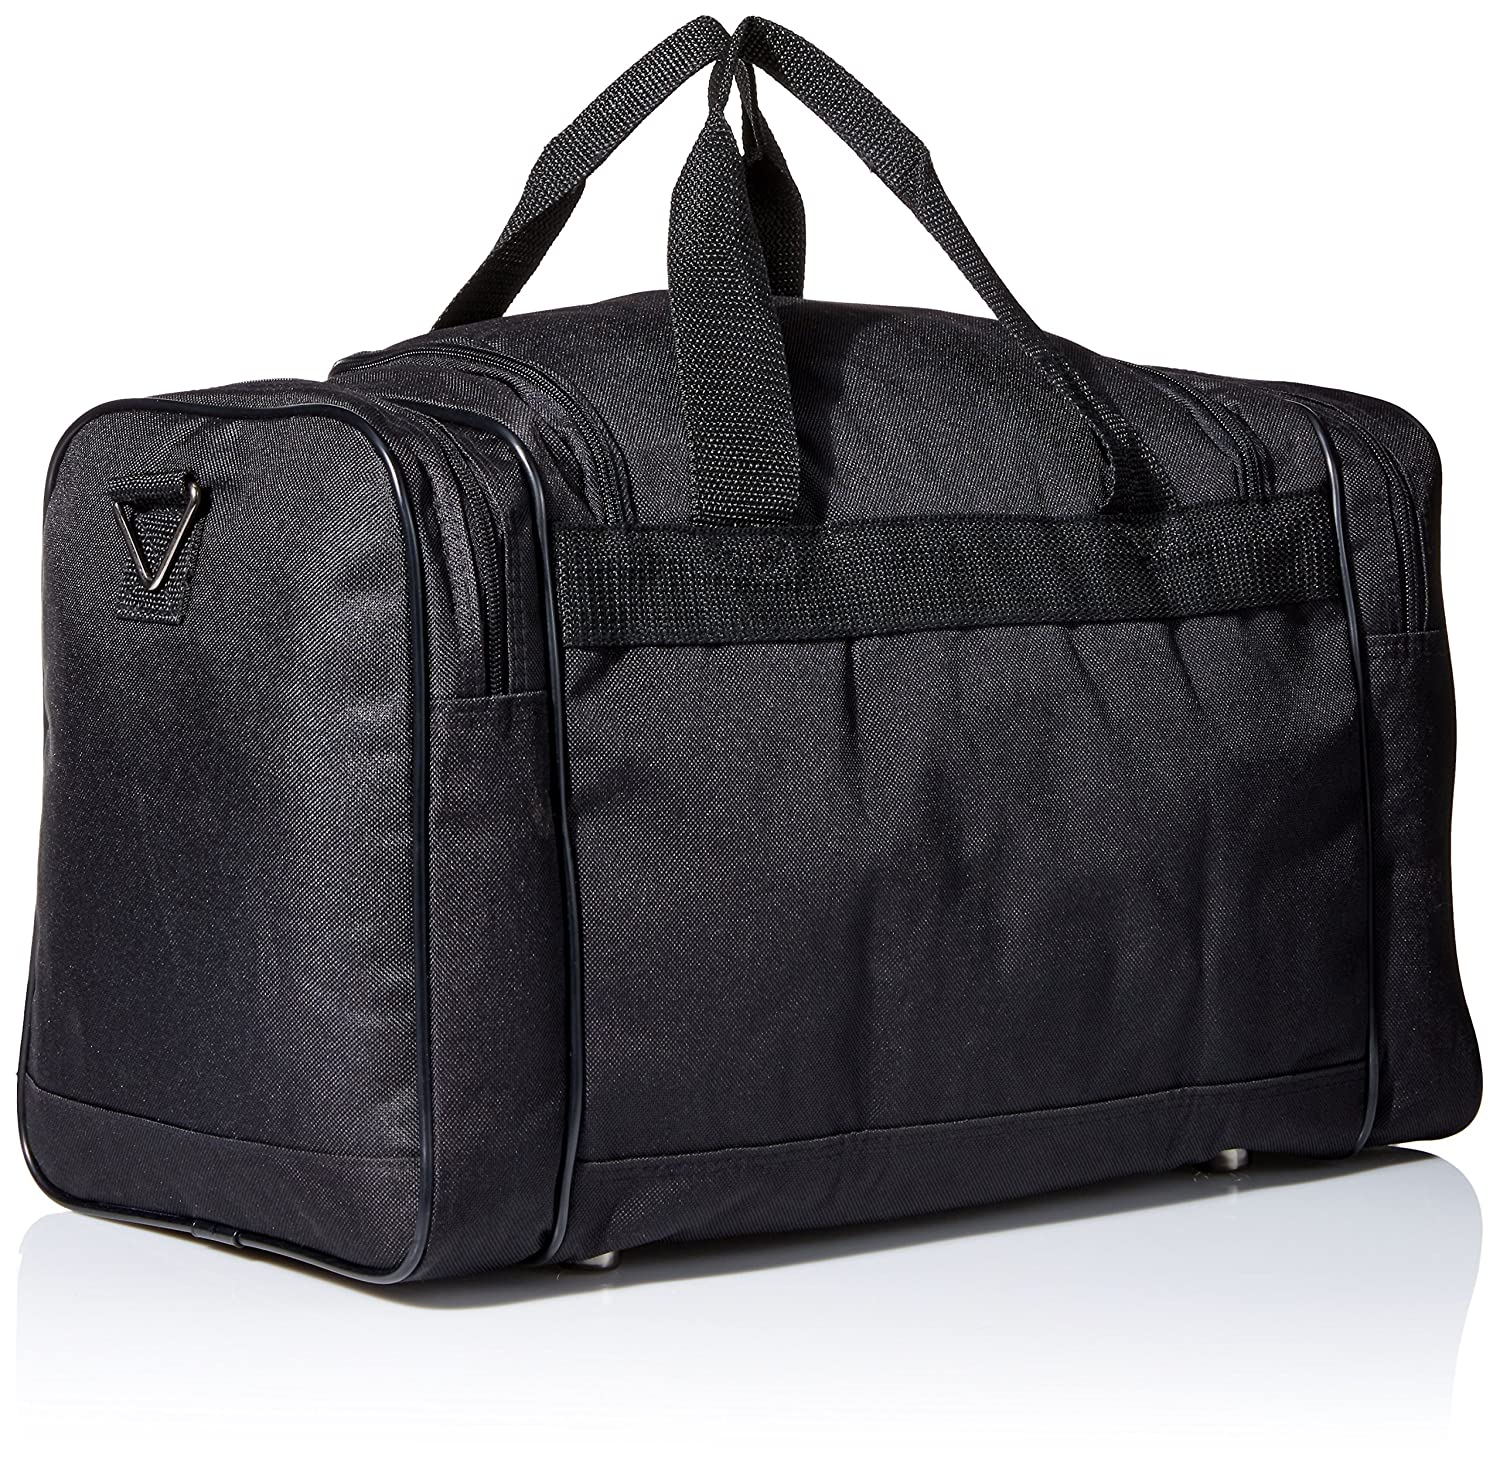 3bd288de31 Amazon.com | DALIX Blank Duffle Bag Duffel Bag in Black Gym Bag | Sports  Duffels